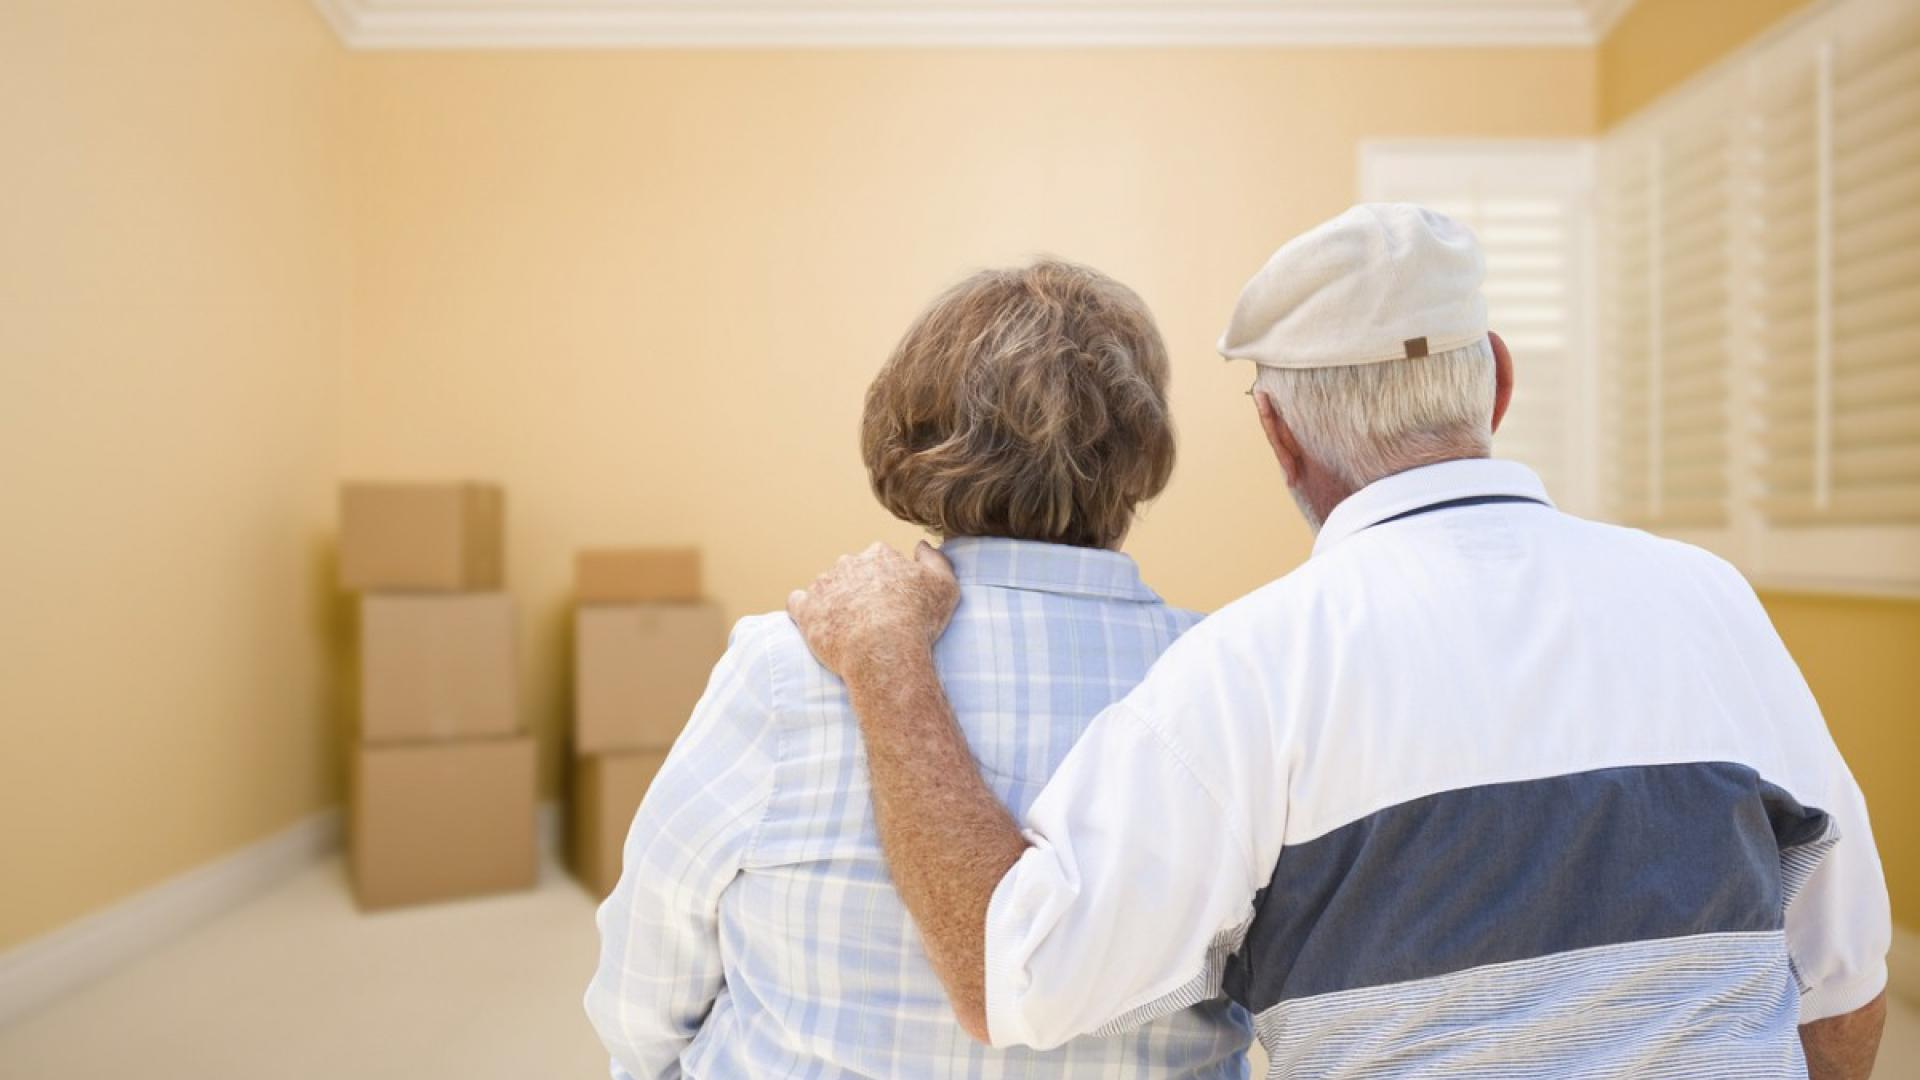 Elderly should move into care homes while they're still fit, says expert